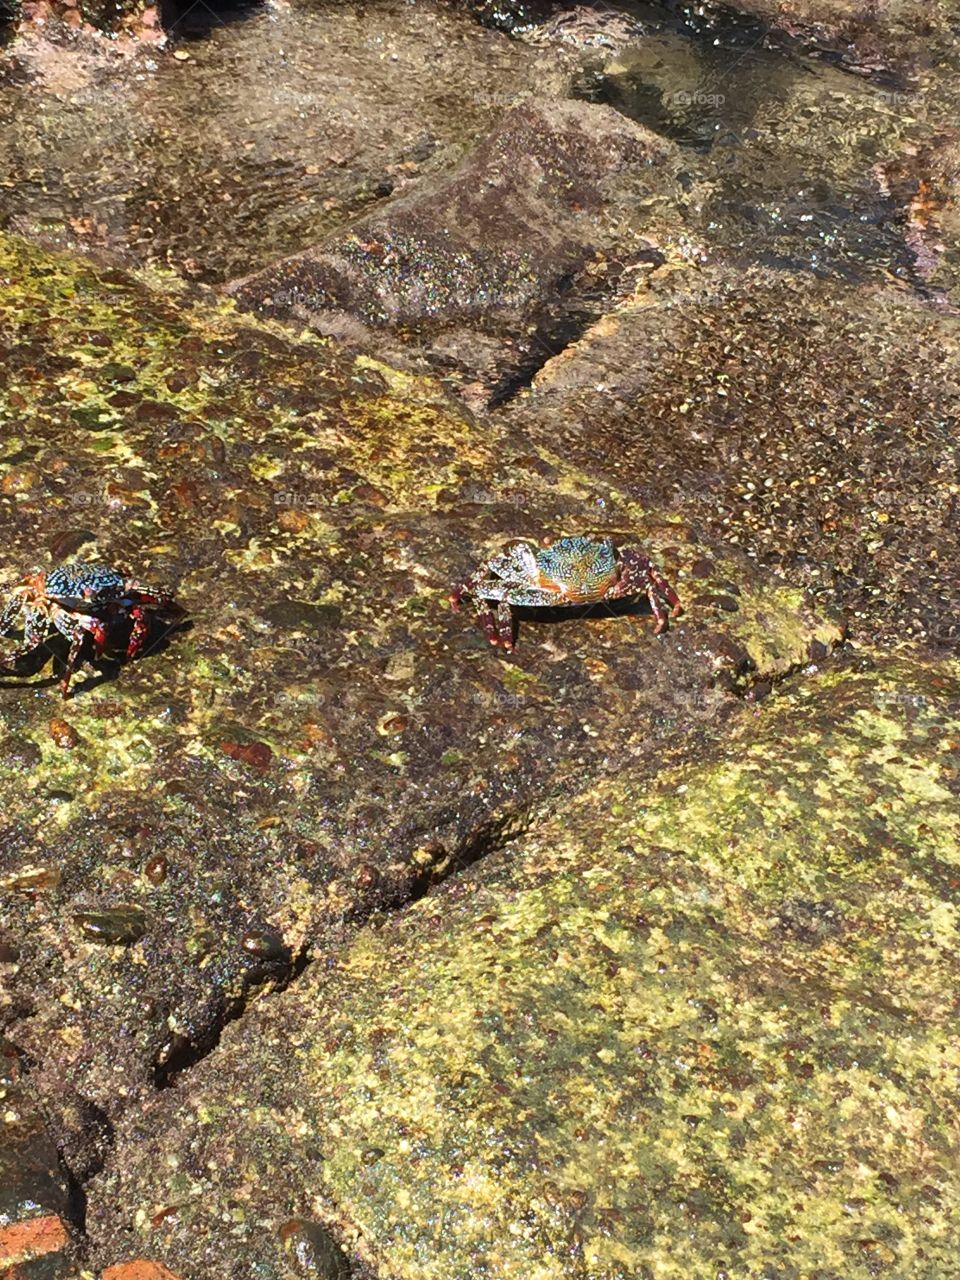 2 colorful crabs!!